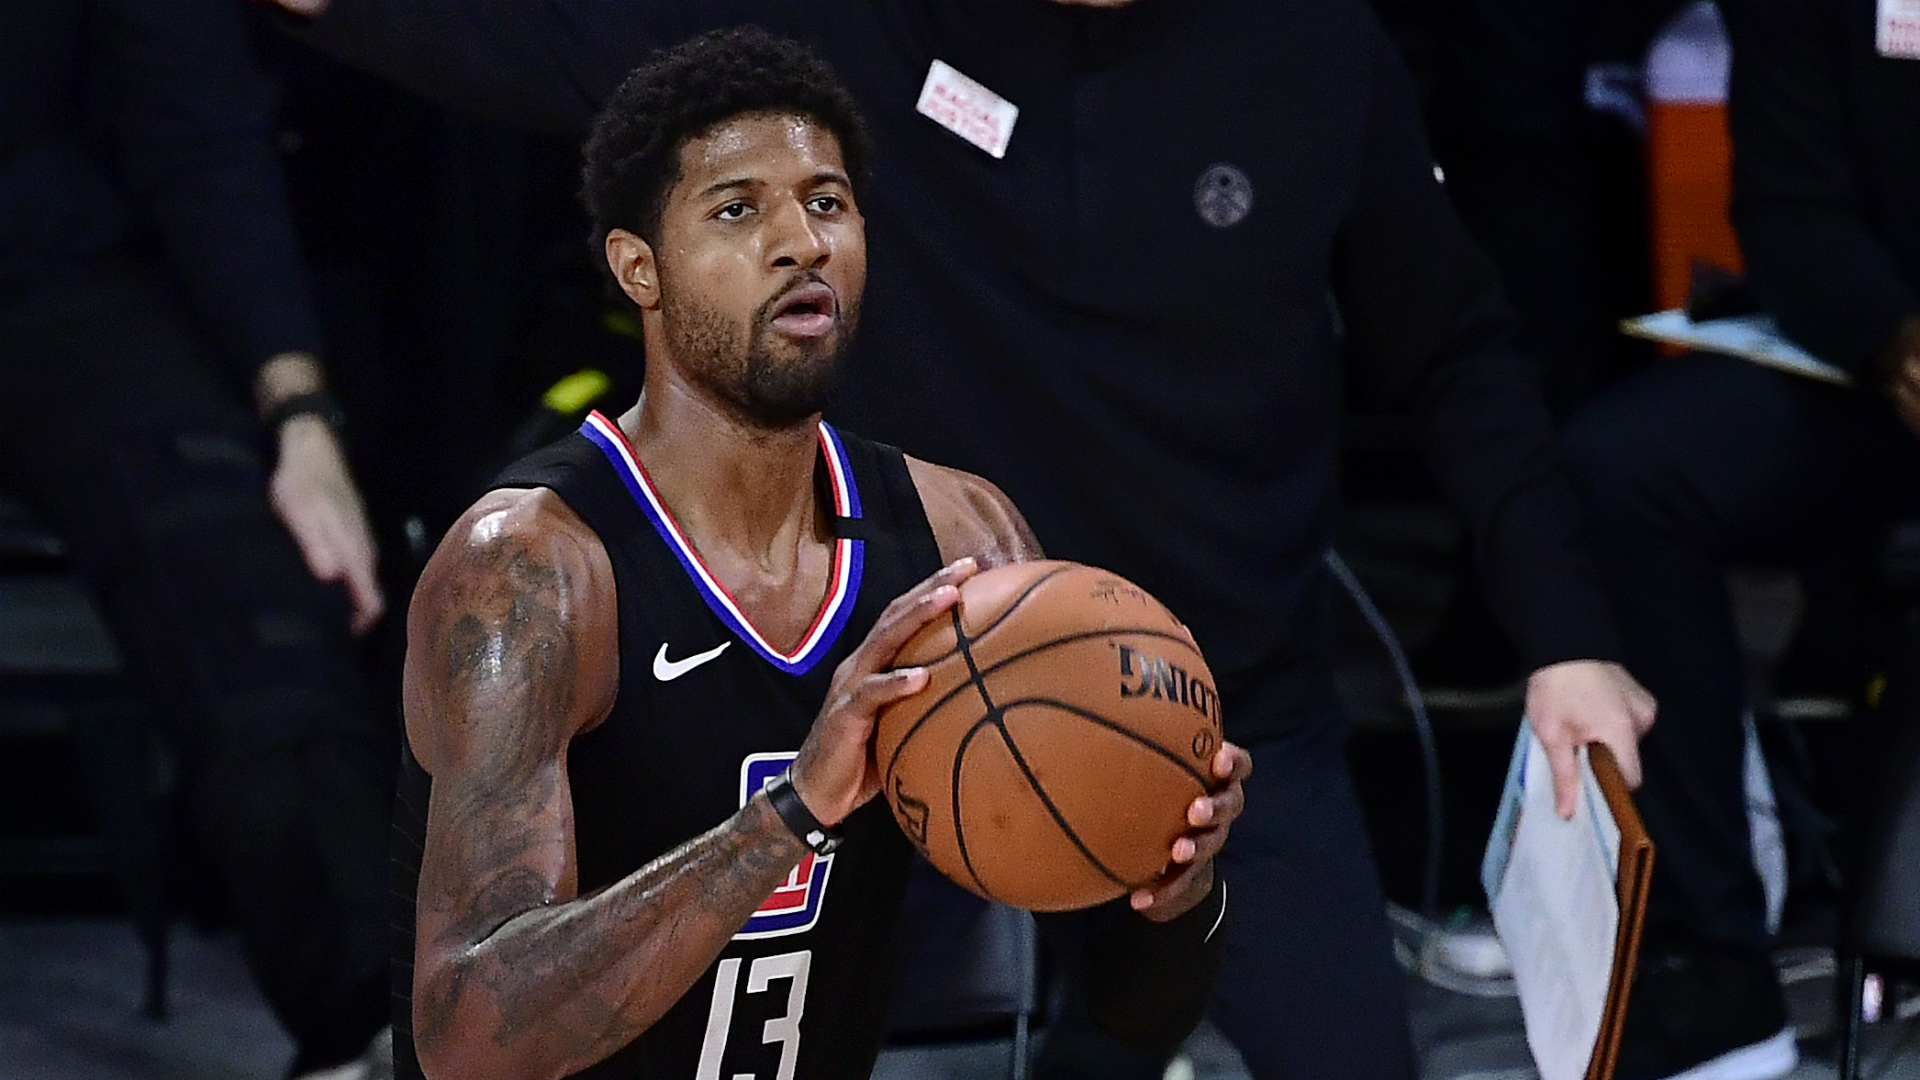 The Los Angeles Clippers will continue to grow as a team after their playoff heartbreak, says Paul George.